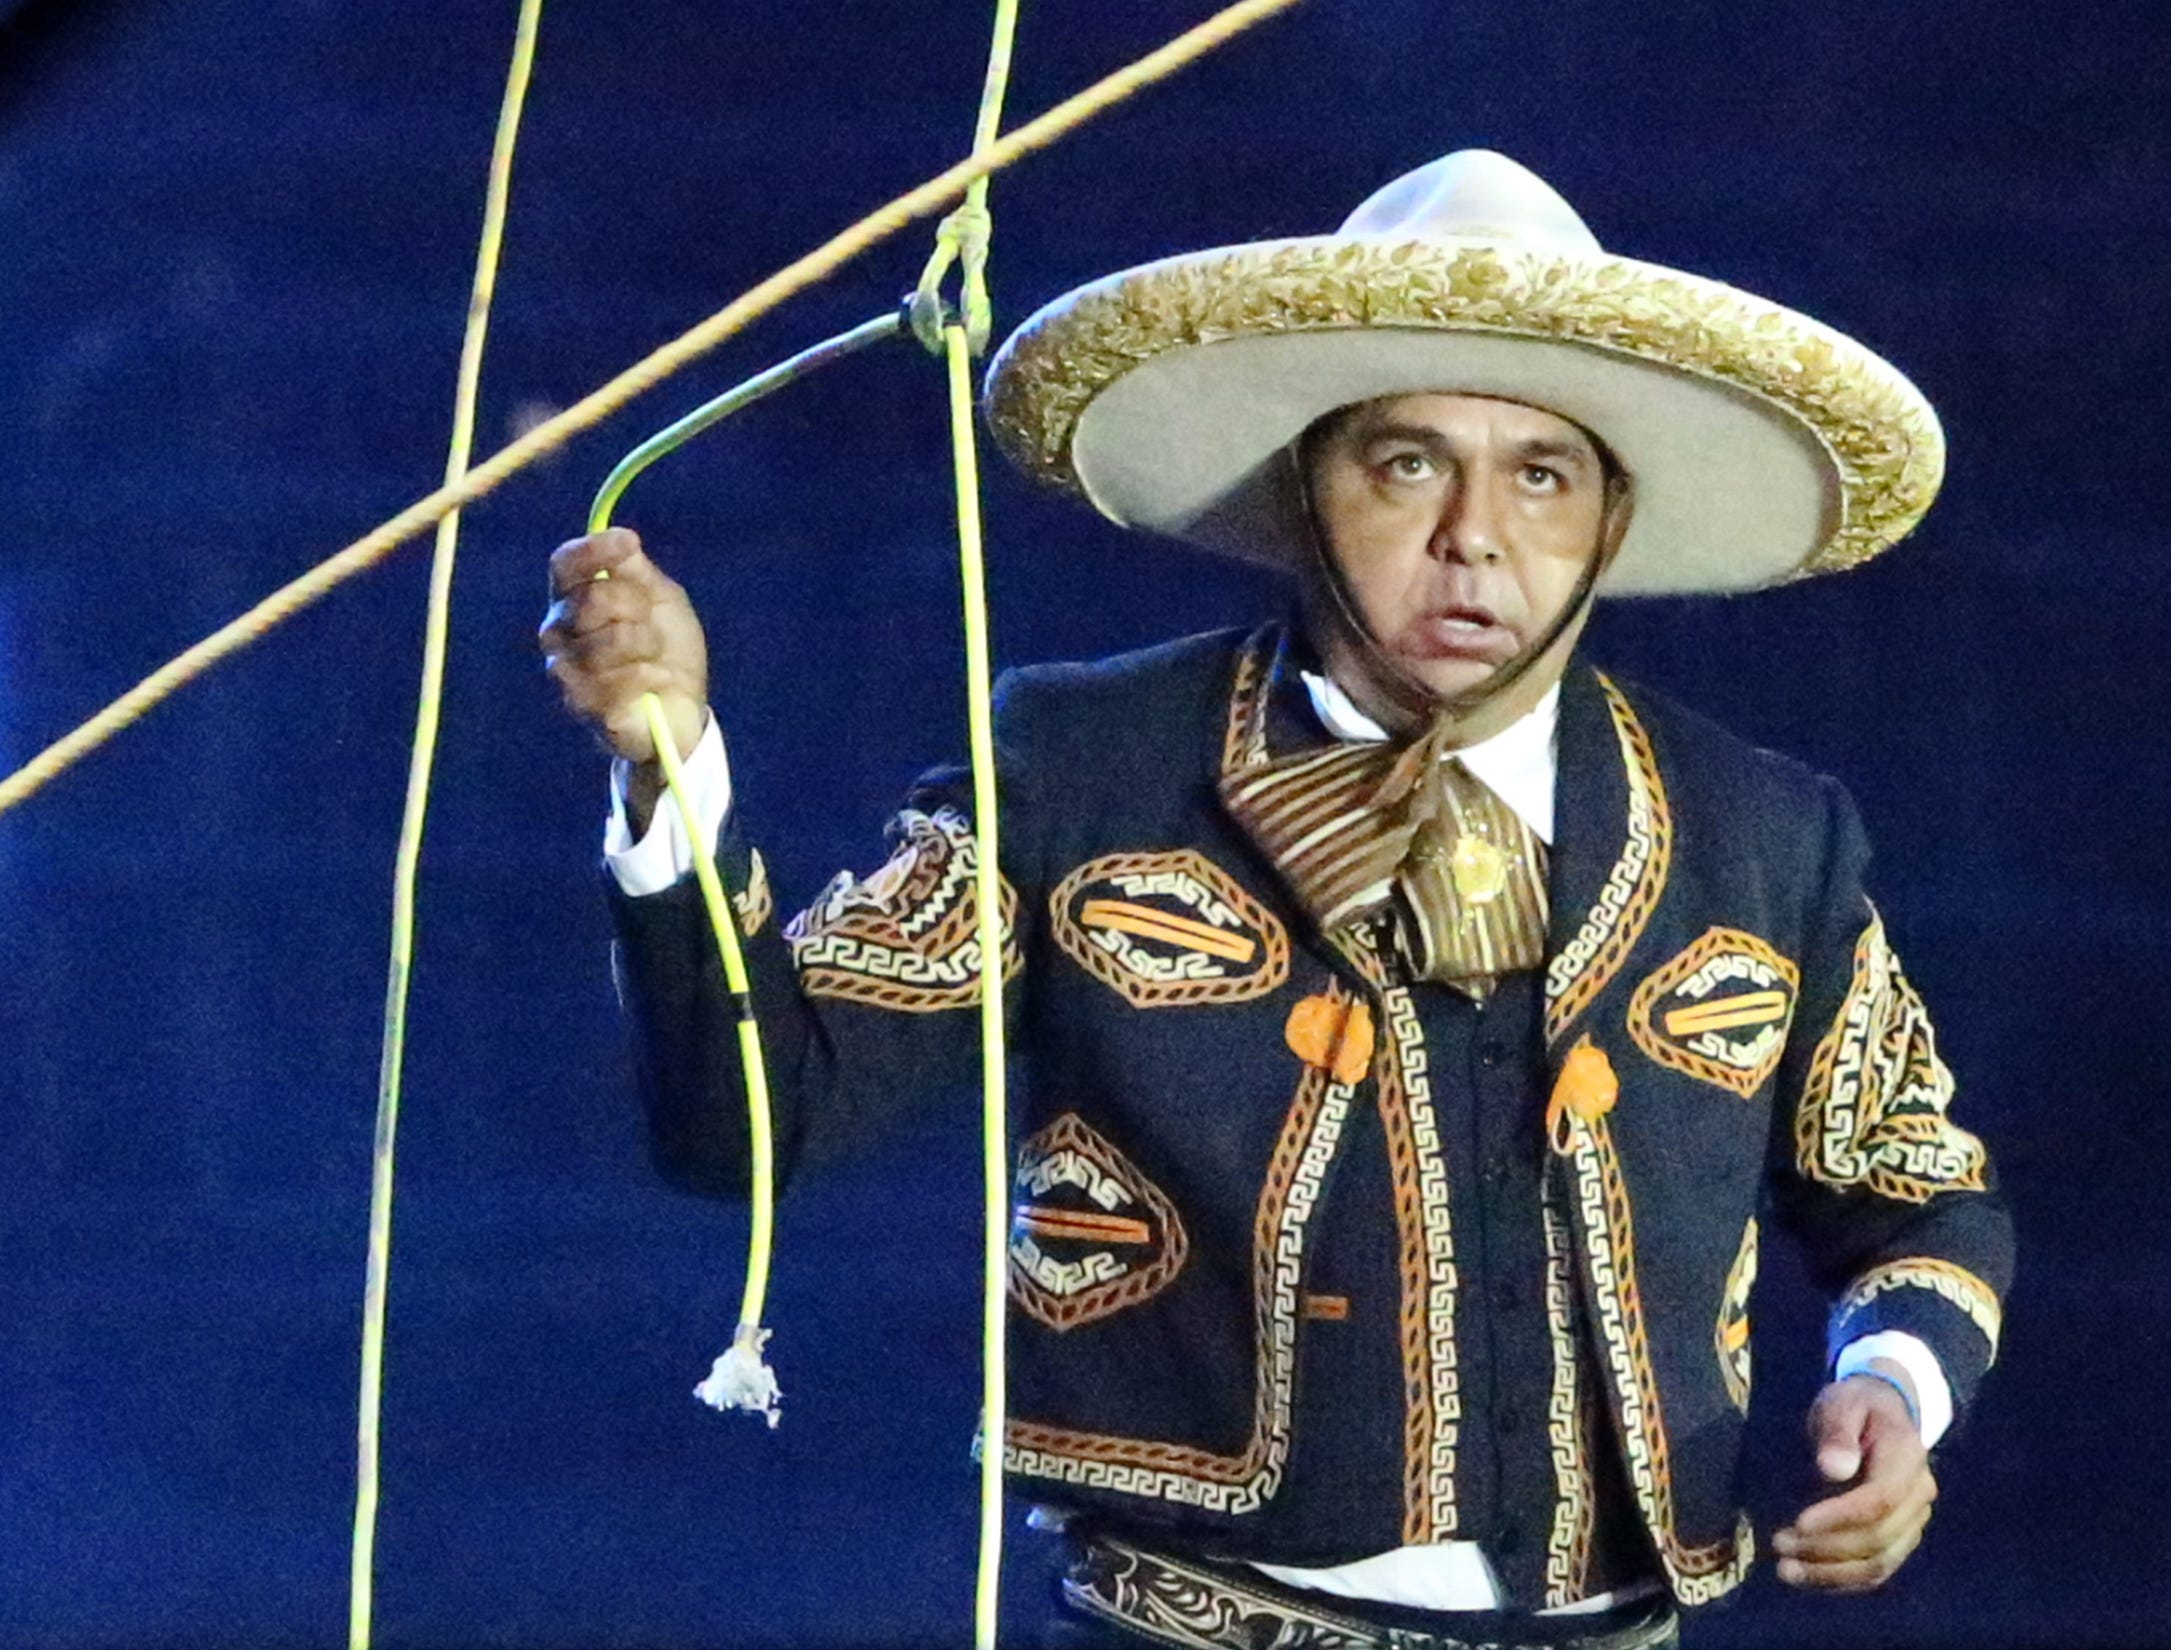 A Mexican Charro from Juarez shows his roping skill while studying a second rope turned by men on opposite ends before jumping it several times Saturday night.